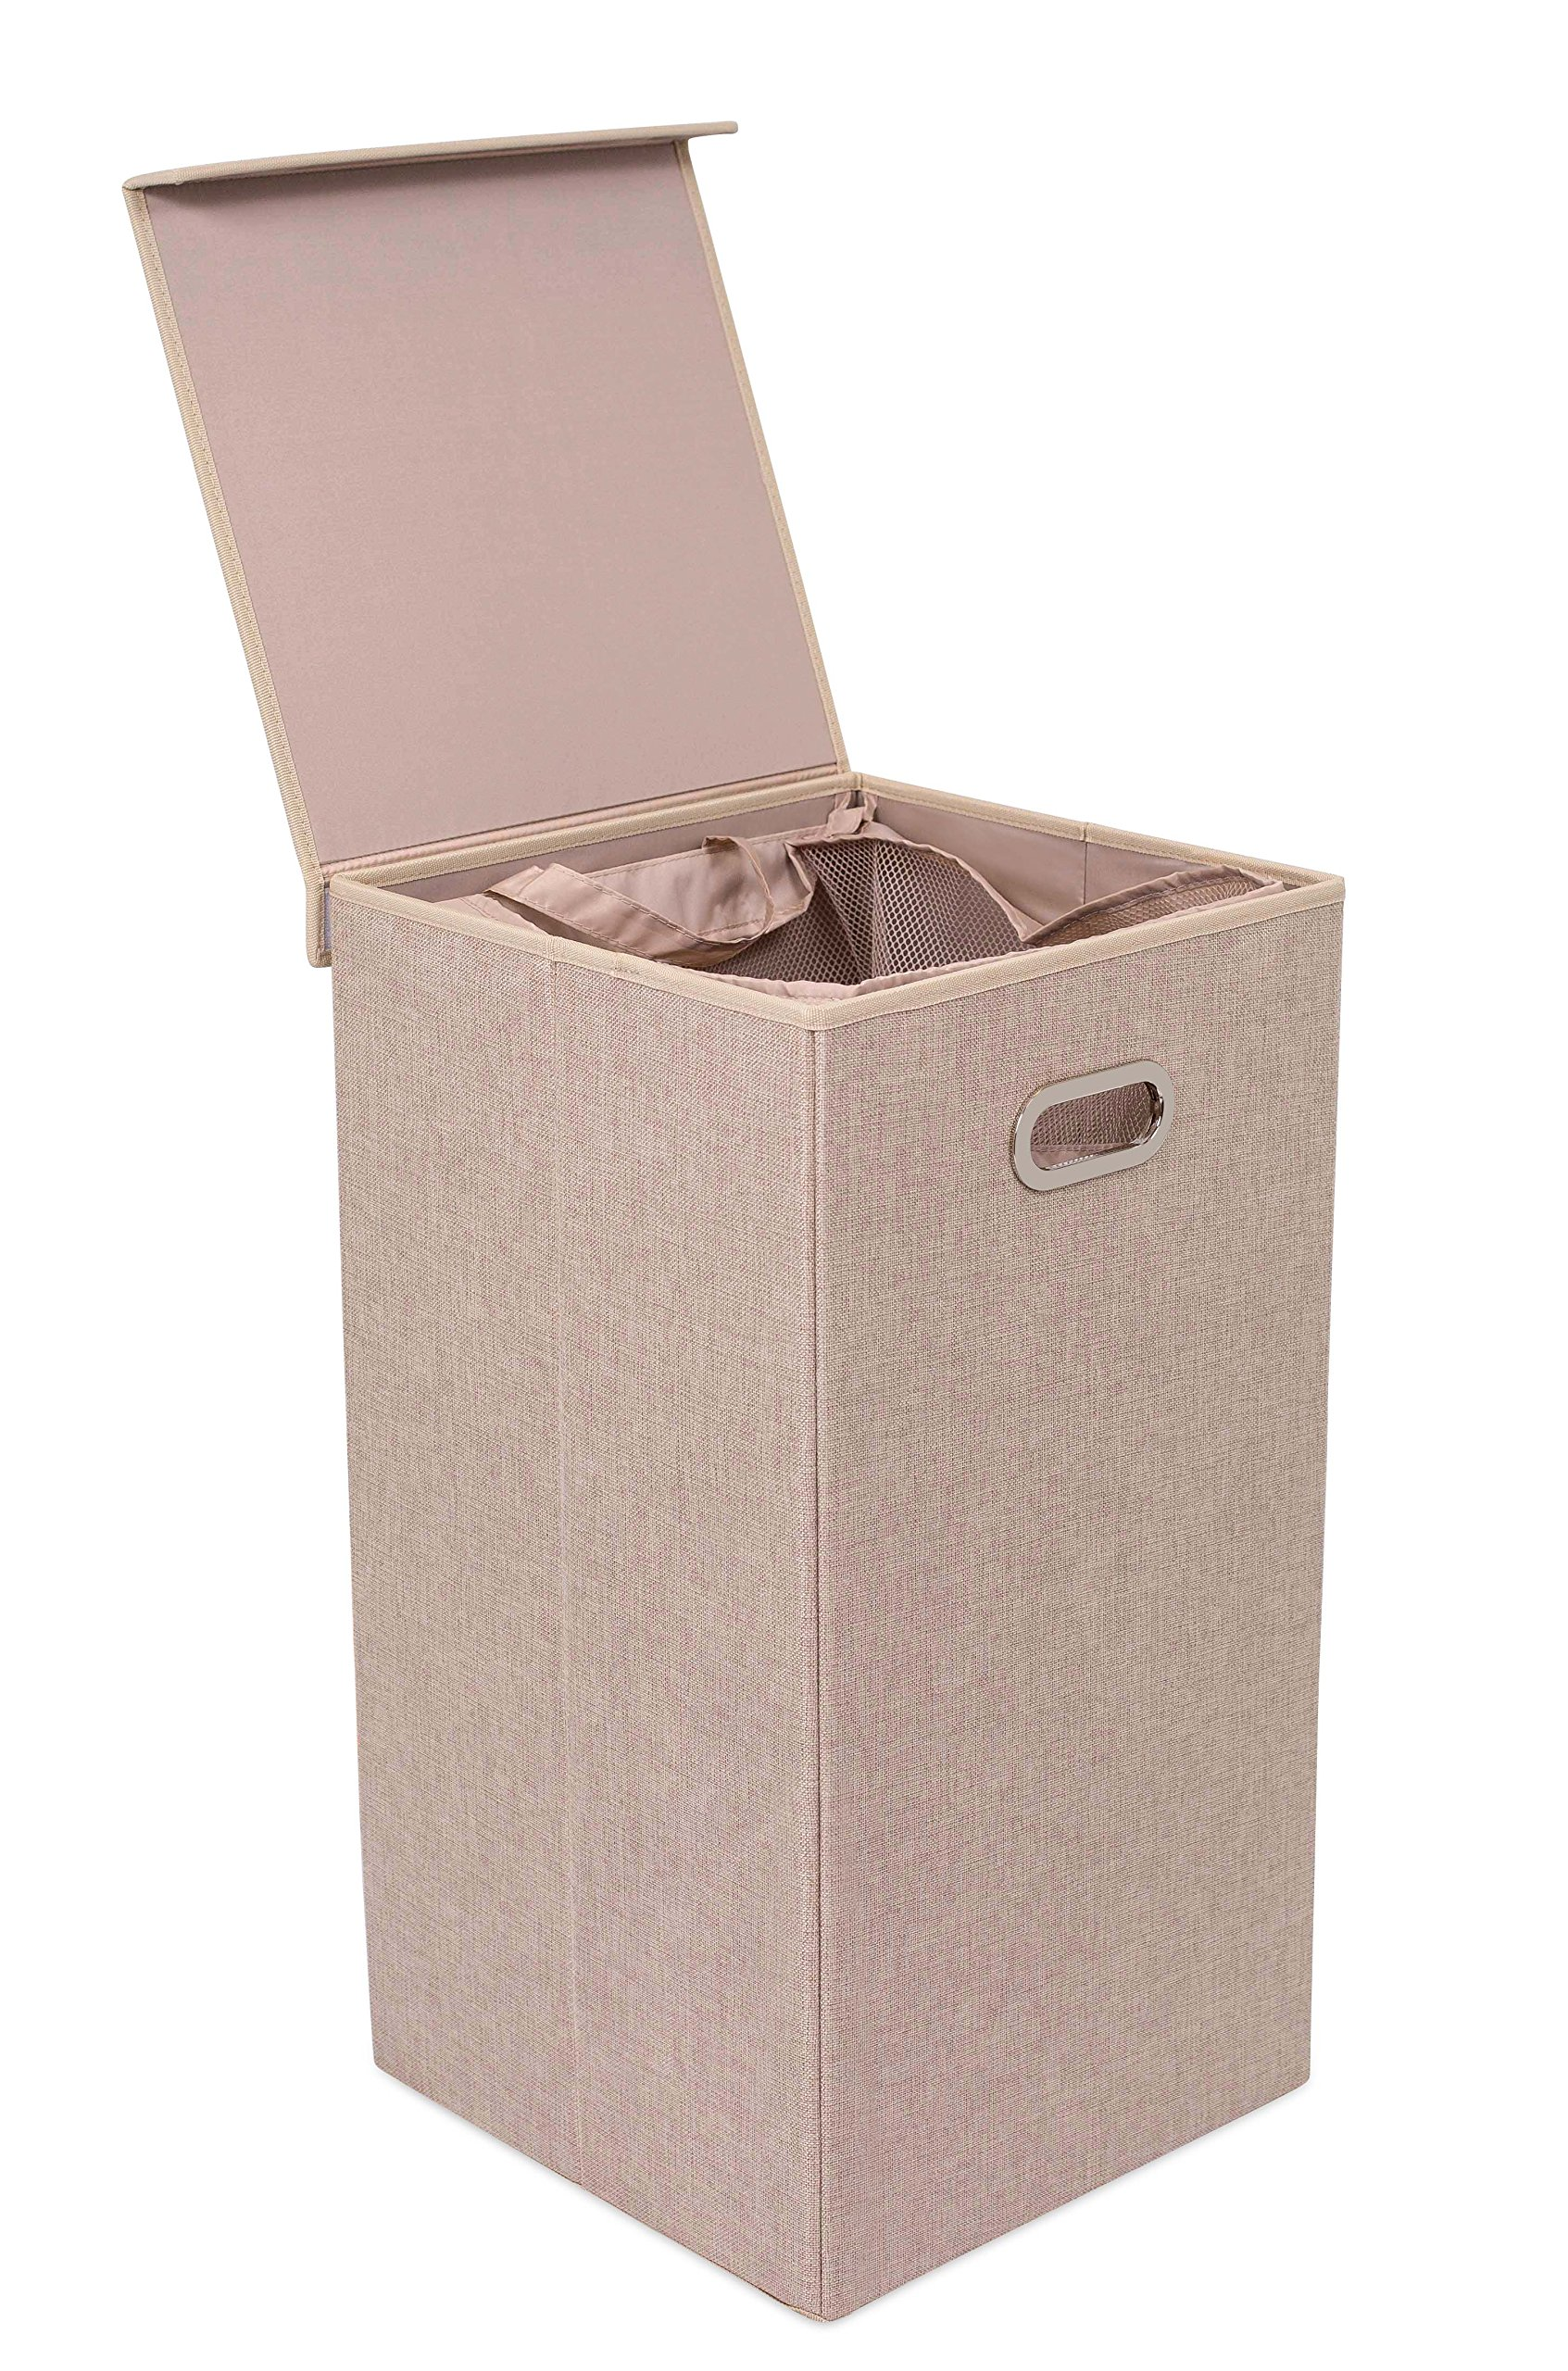 BirdRock Home Single Laundry Hamper with Lid and Removable Liner - Linen - Easily Transport Laundry - Foldable Hamper - Cut Out Handles by BIRDROCK HOME